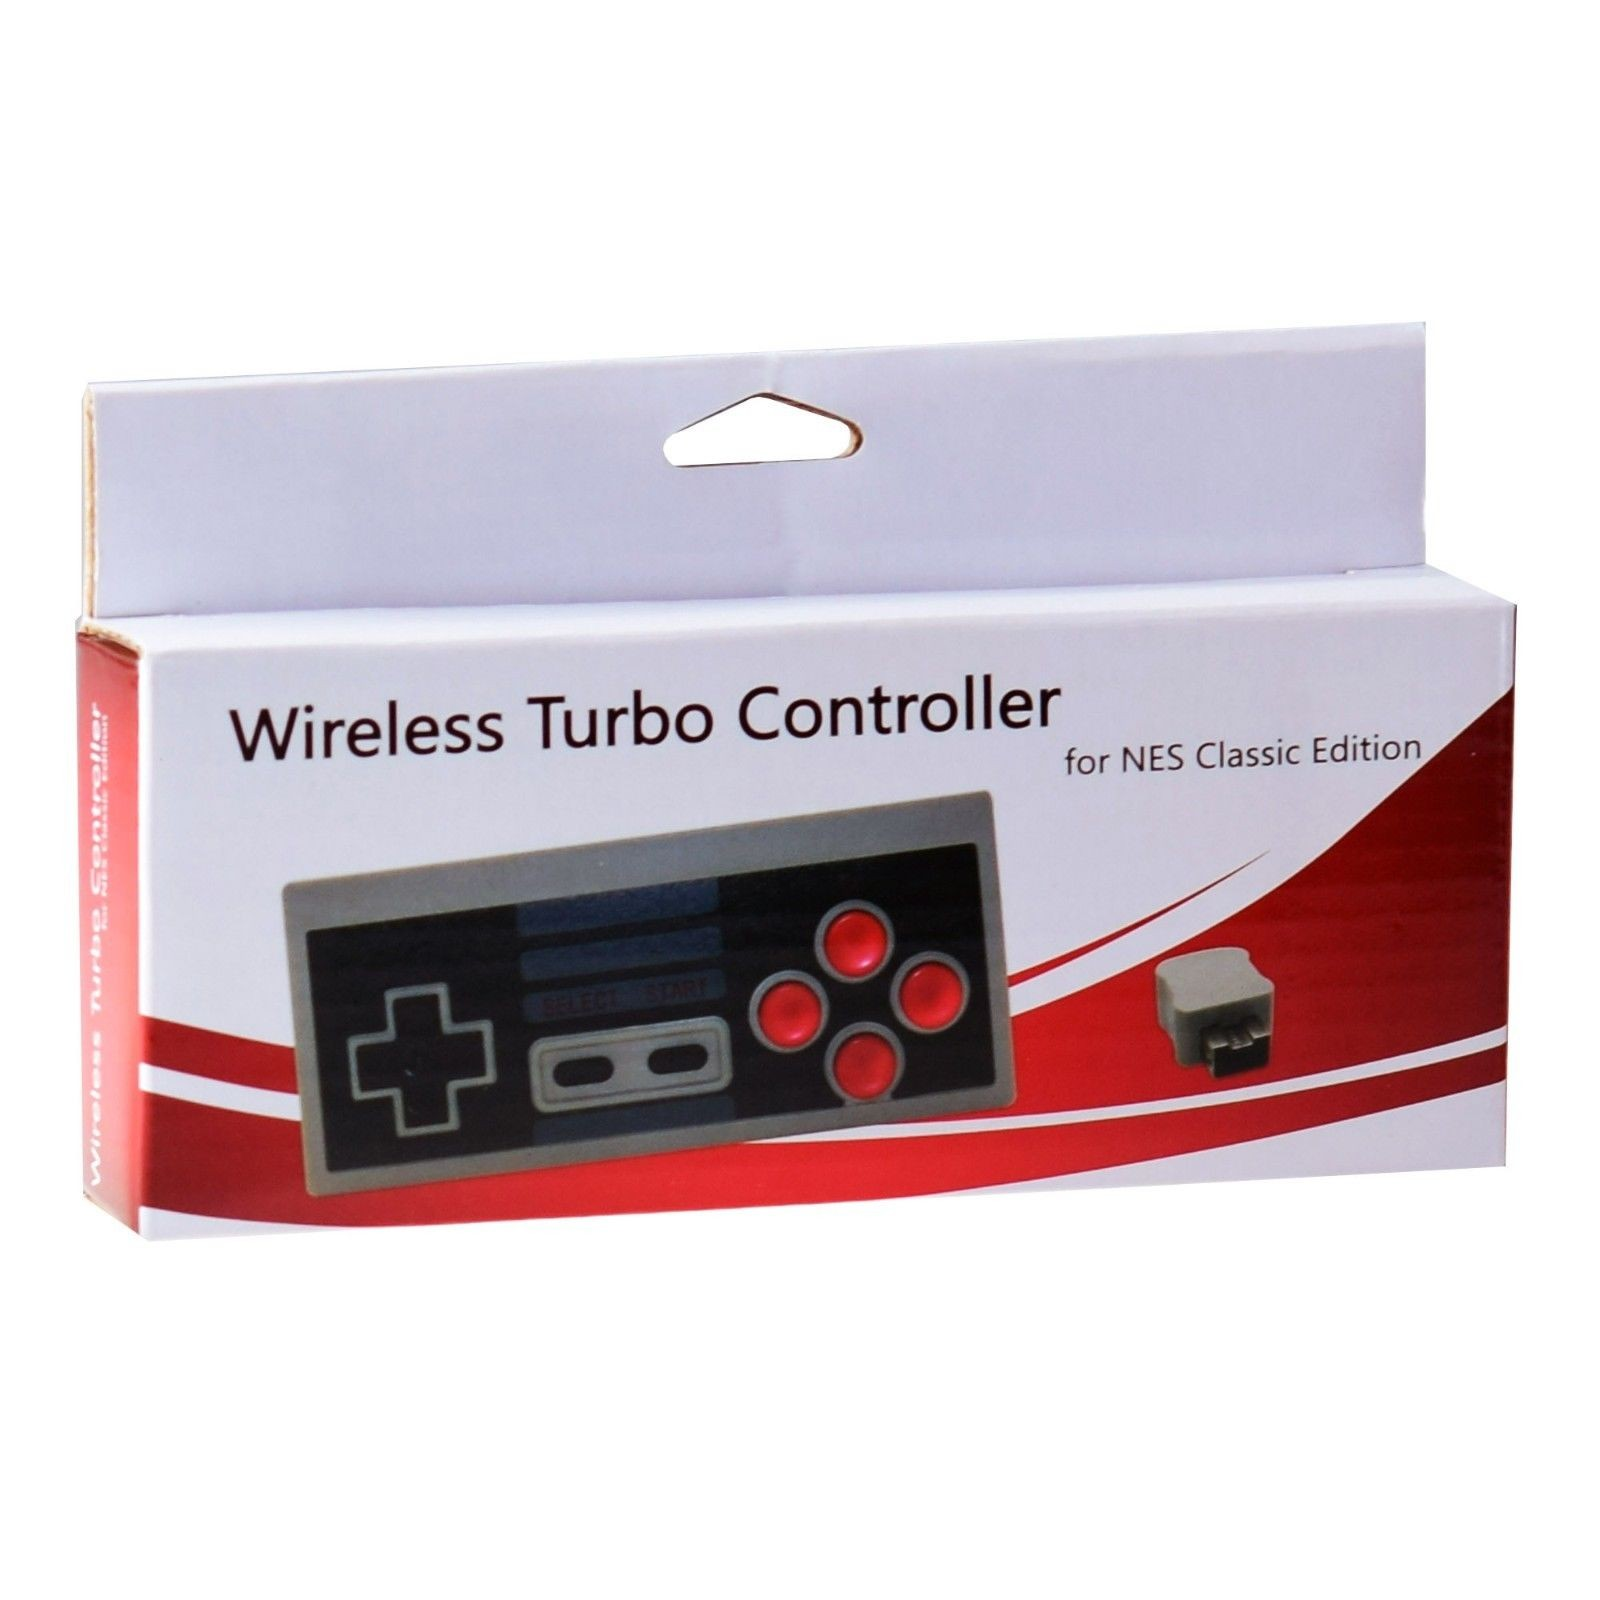 Wireless Turbo Controller for NES Classic Edition